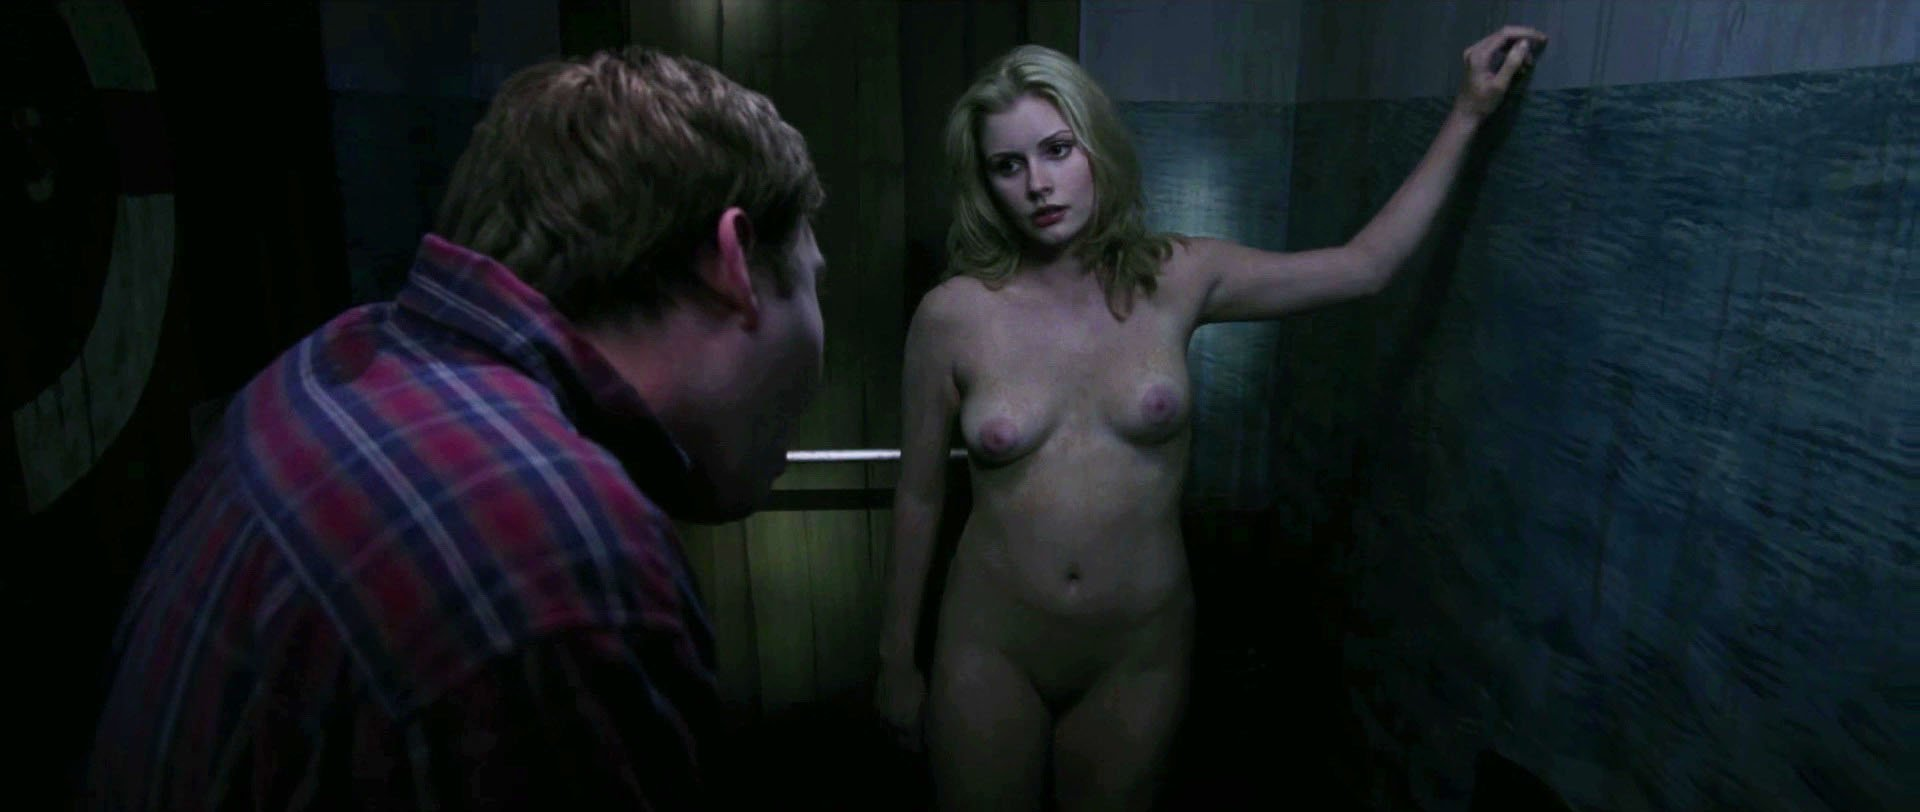 Images for brianna brown topless nude naked confirm. agree